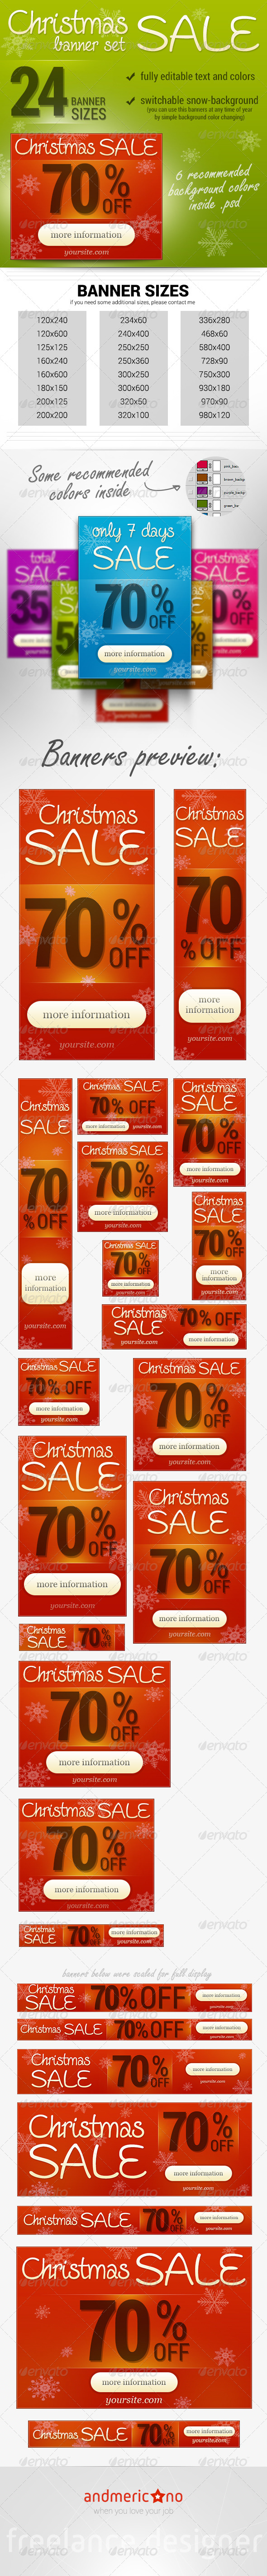 Christmas Banner Set - Banners & Ads Web Elements